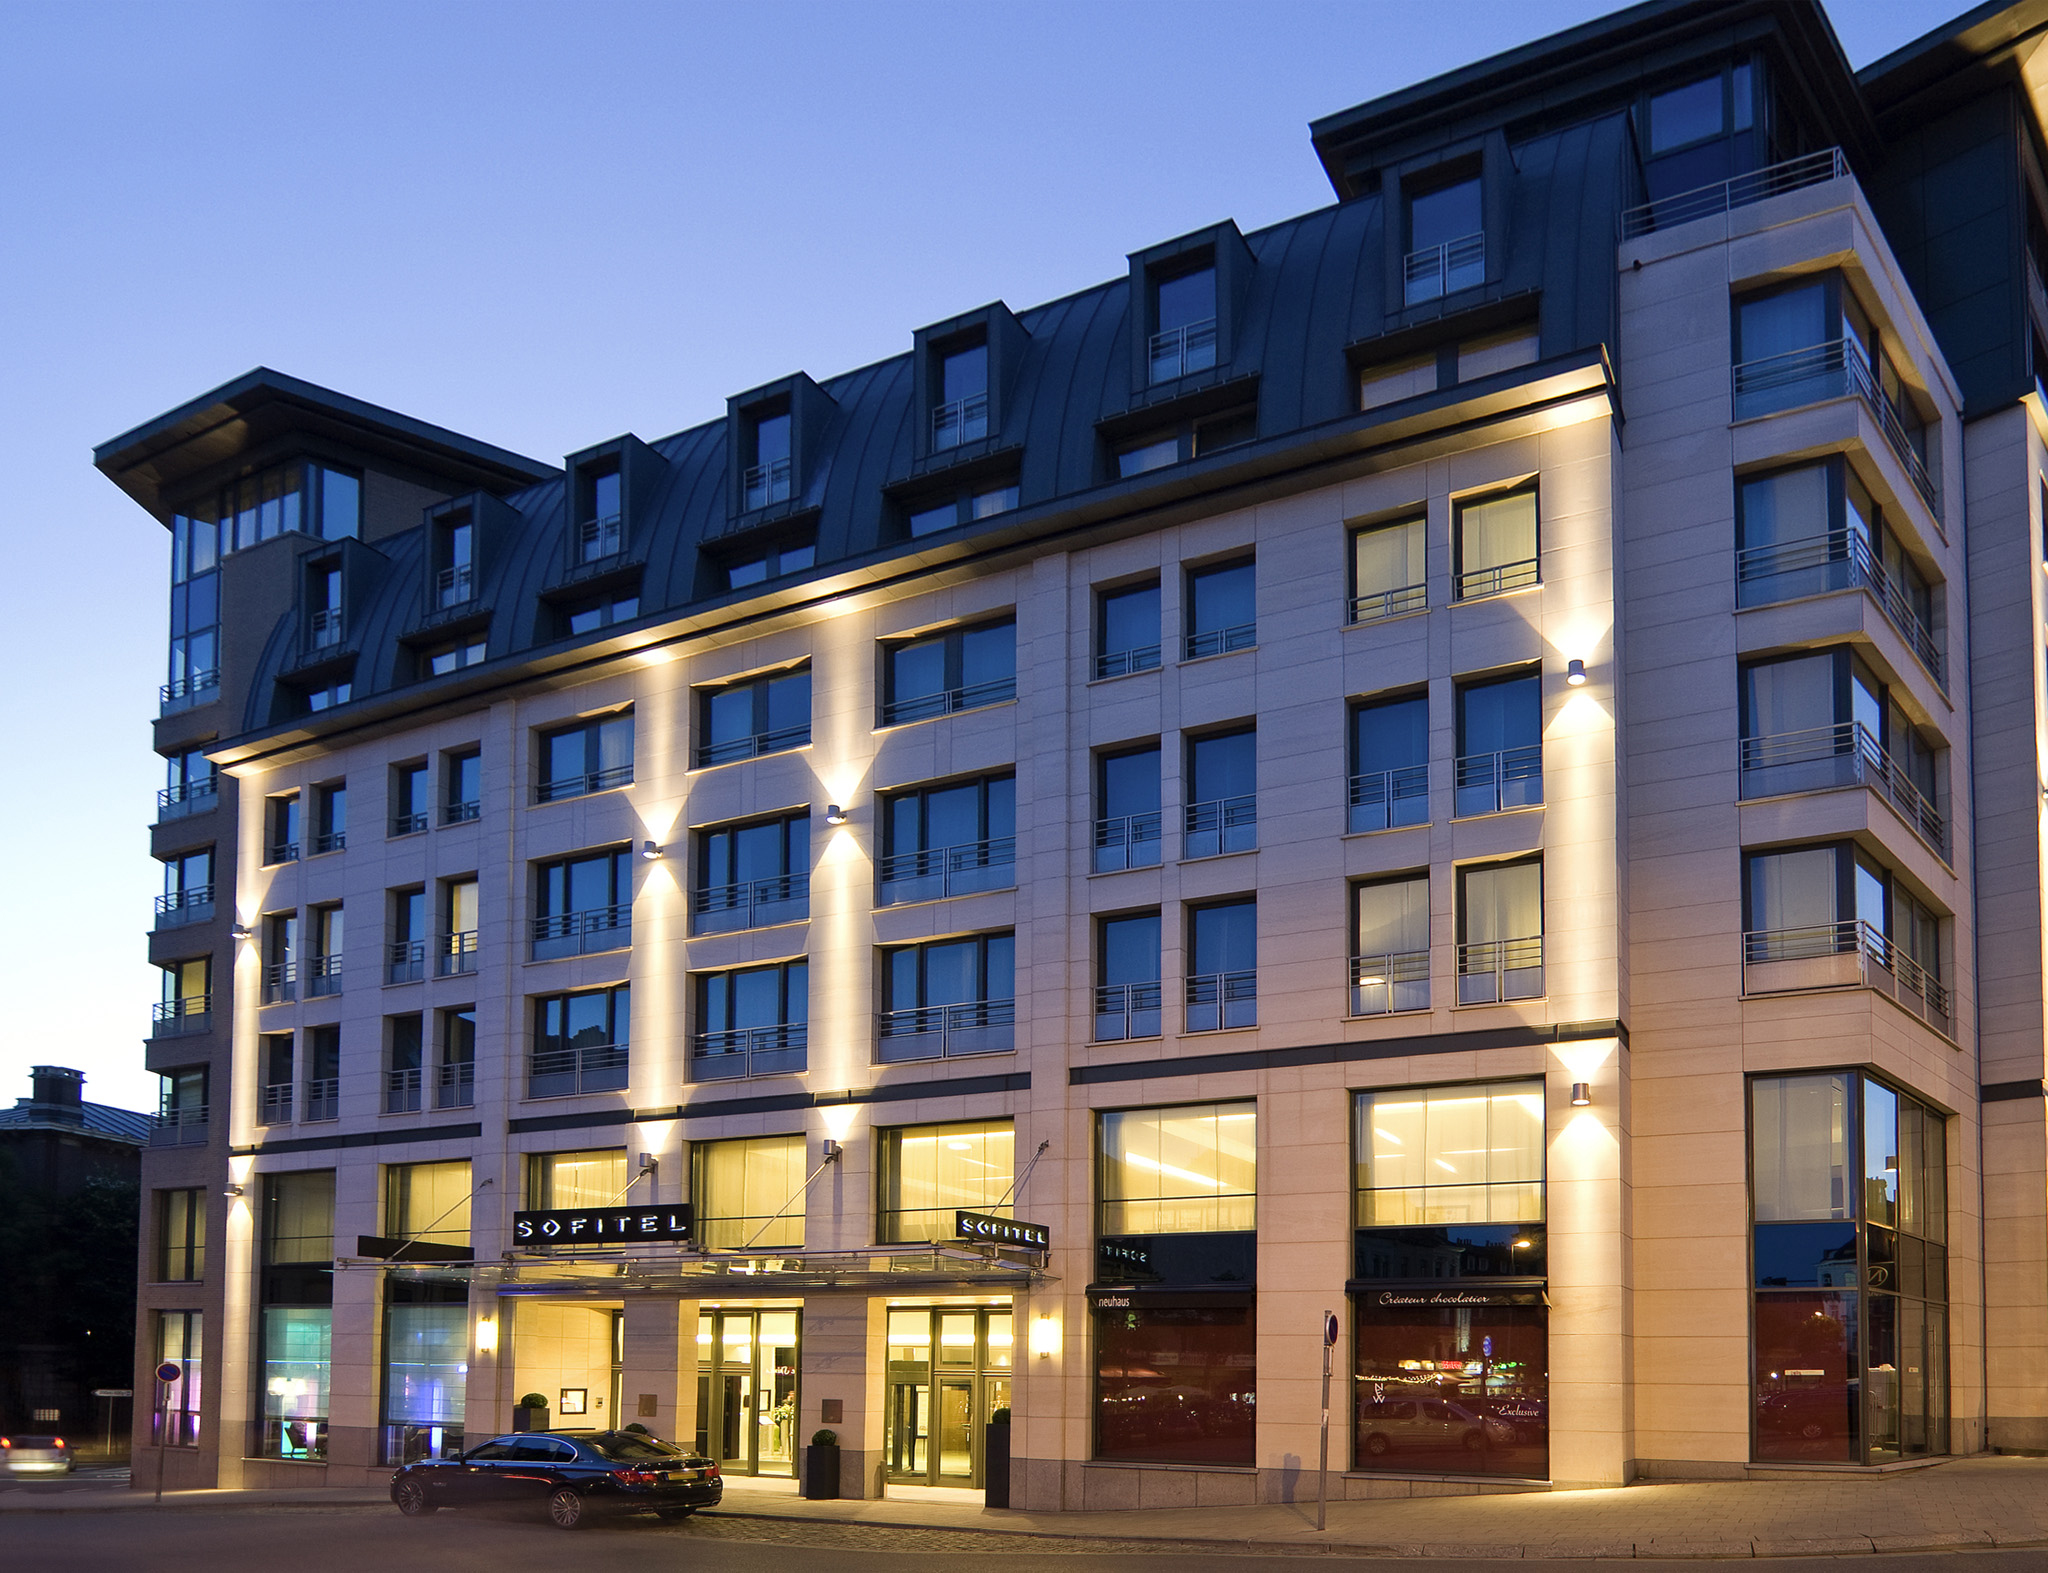 Hotell – Sofitel Brussels Europe